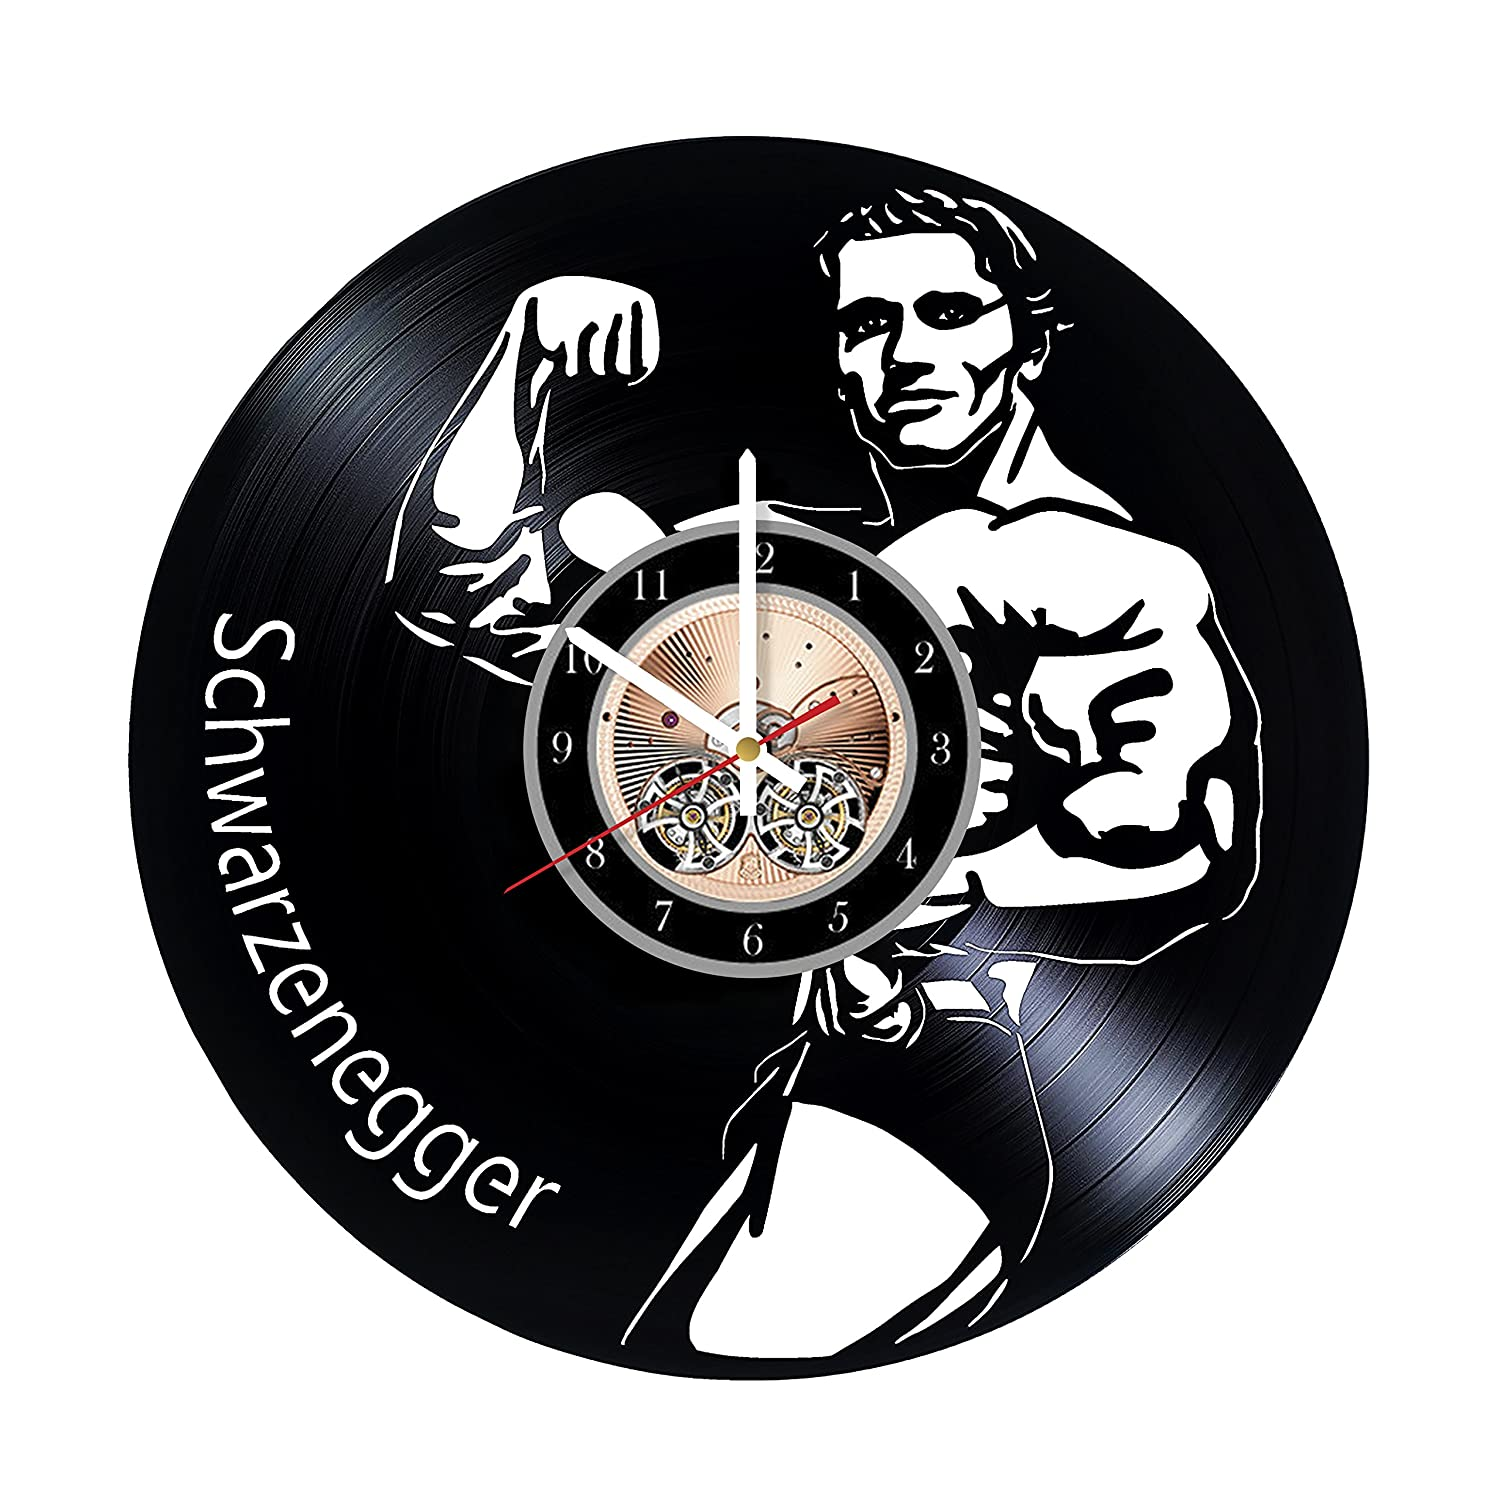 Arnold Schwarzenegger American Actor HANDMADE Vinyl Record Wall Clock - Get unique bedroom or living room wall decor - Gift ideas for him and her